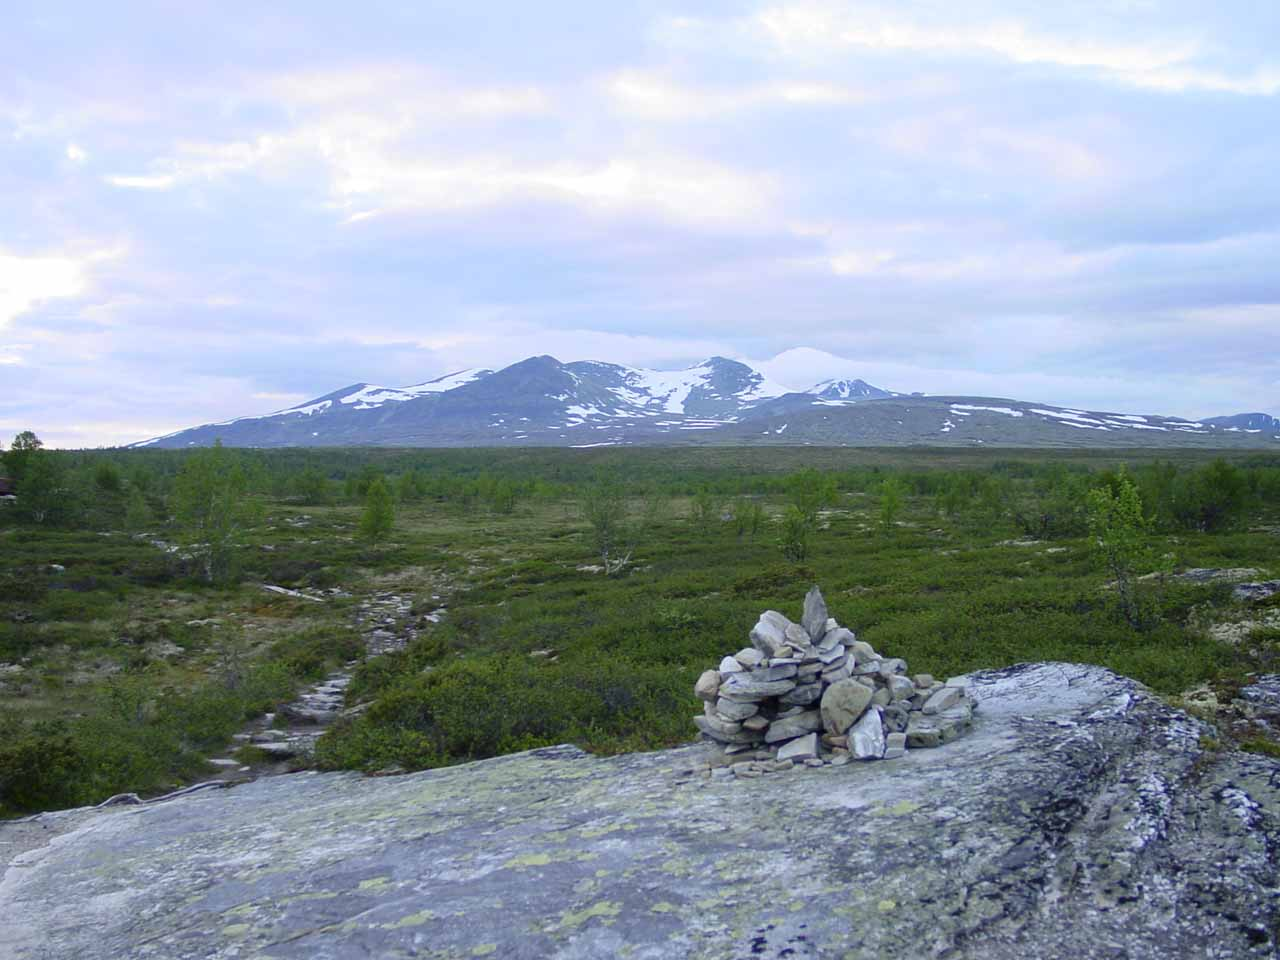 This rock cairn also helped to point out the spur to Vesleulfossen